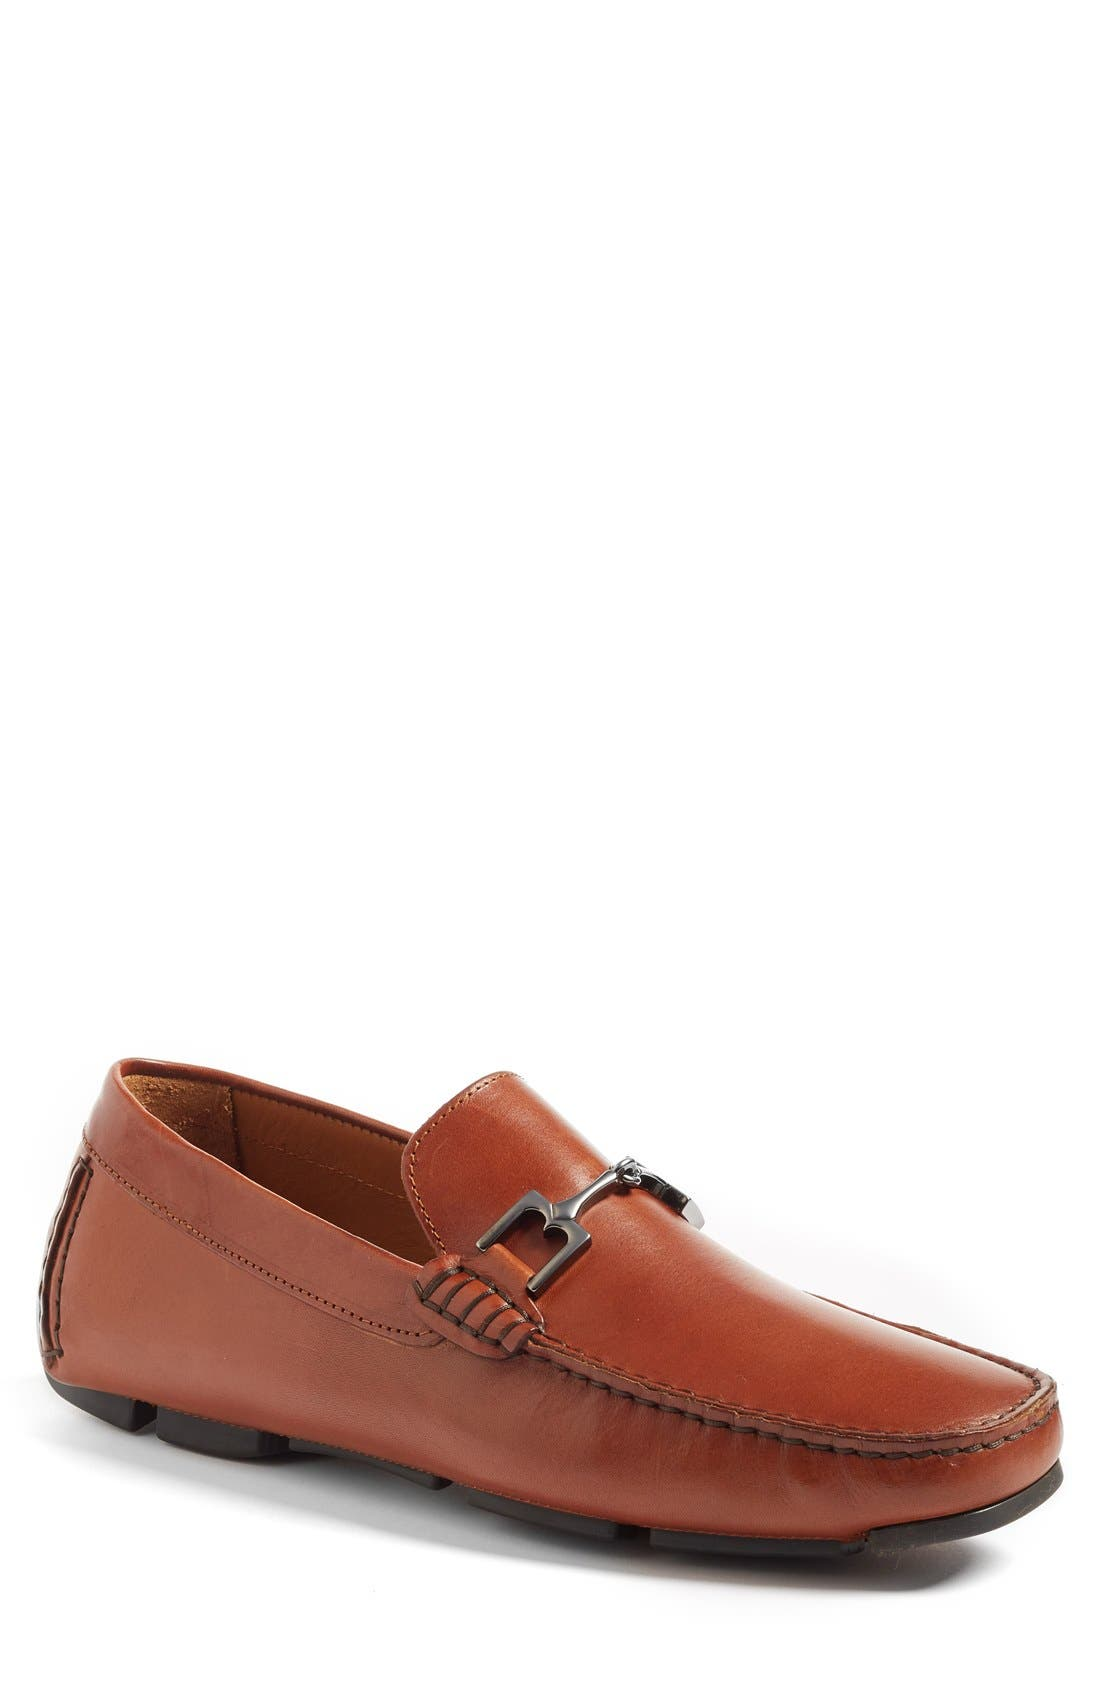 'Monza' Driving Shoe,                             Main thumbnail 1, color,                             Cognac Leather